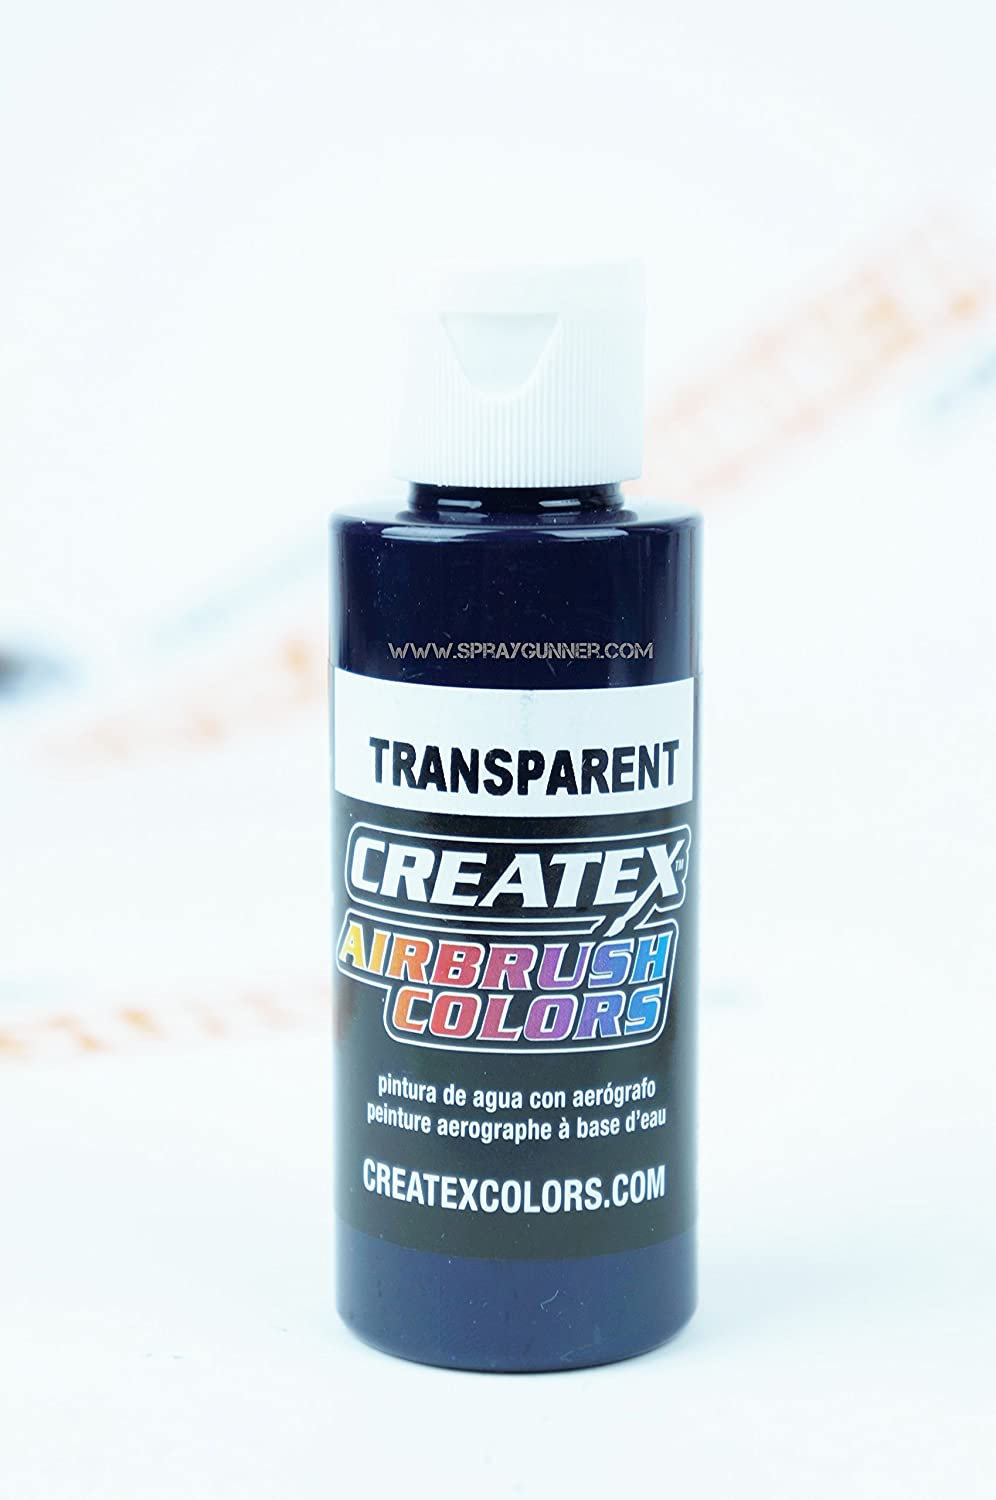 Createx Airbrush Colors 5102 Transparent Violet 2oz. Paint. by SprayGunner